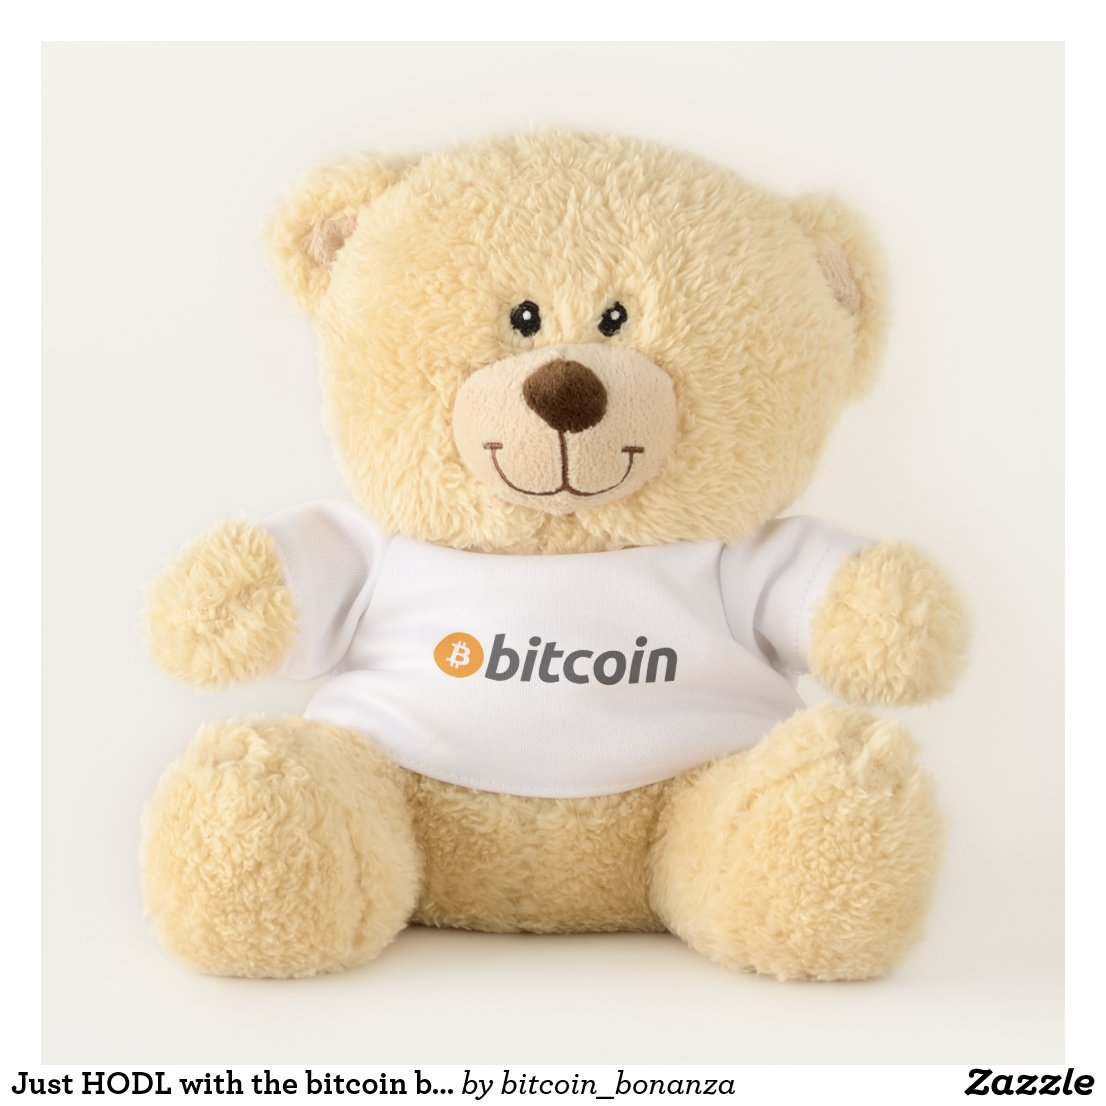 Just HODL with the bitcoin bear